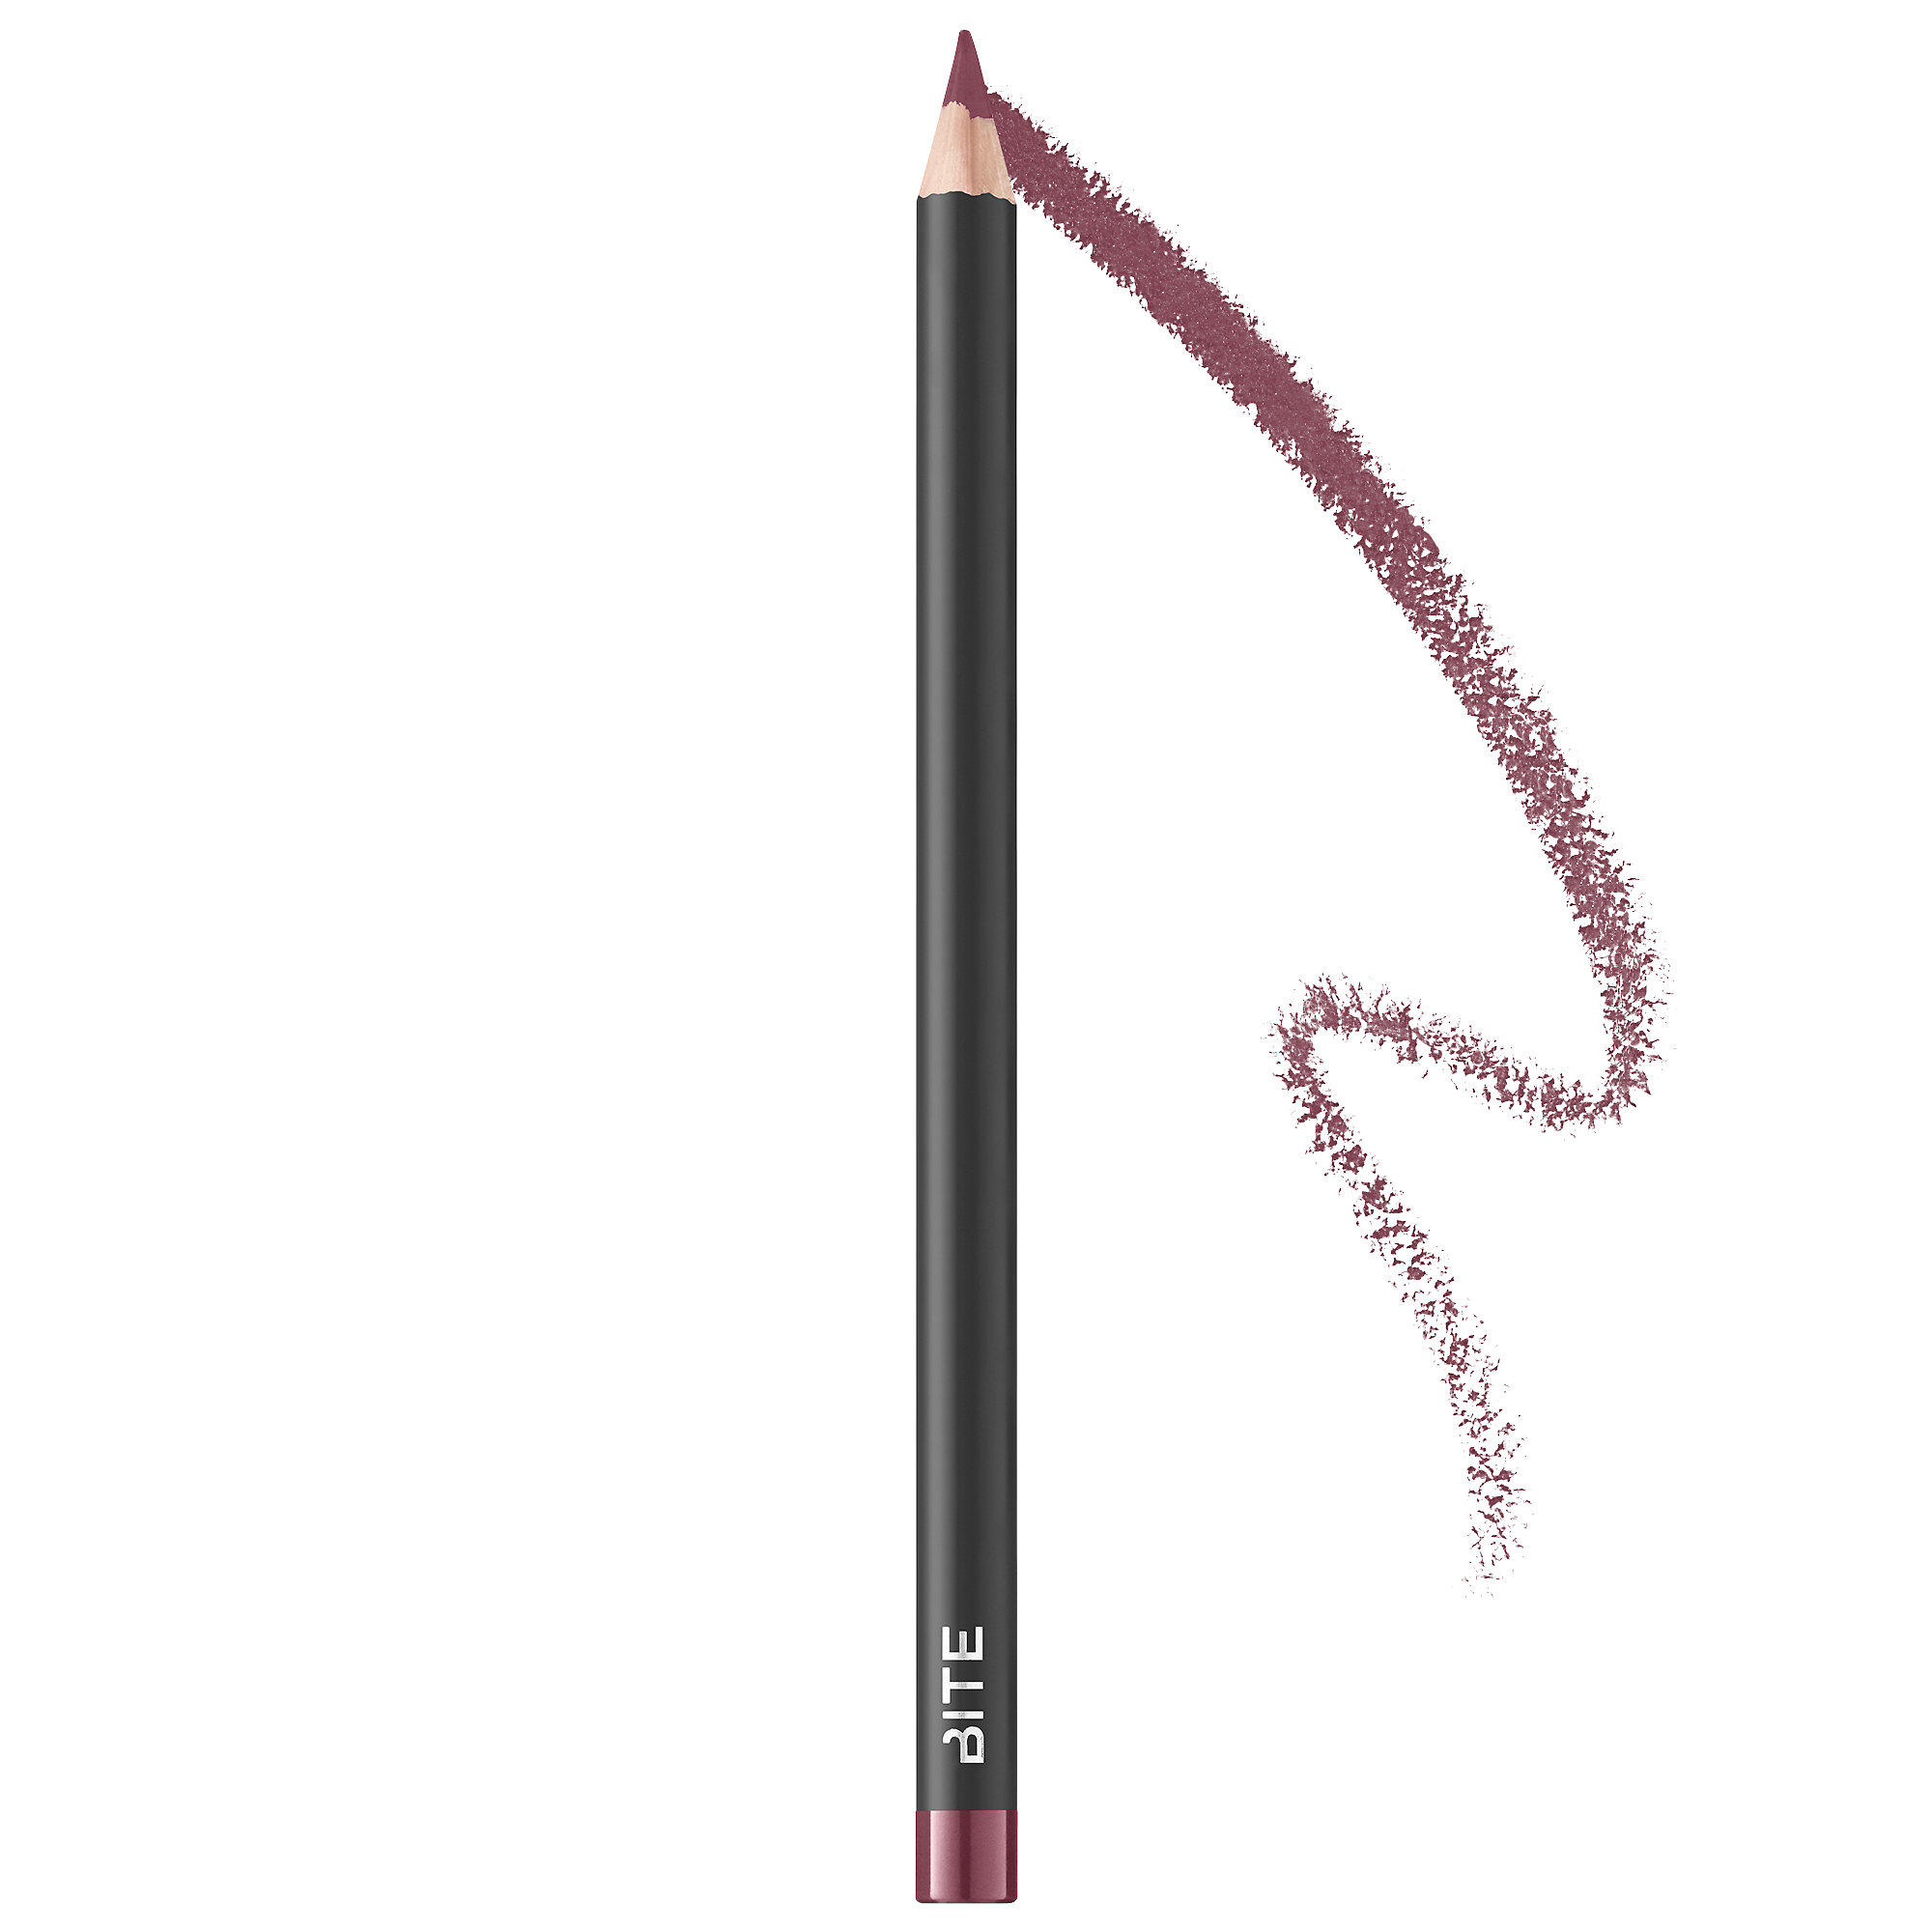 Bite Beauty The Lip Pencil Dusty Rose 016